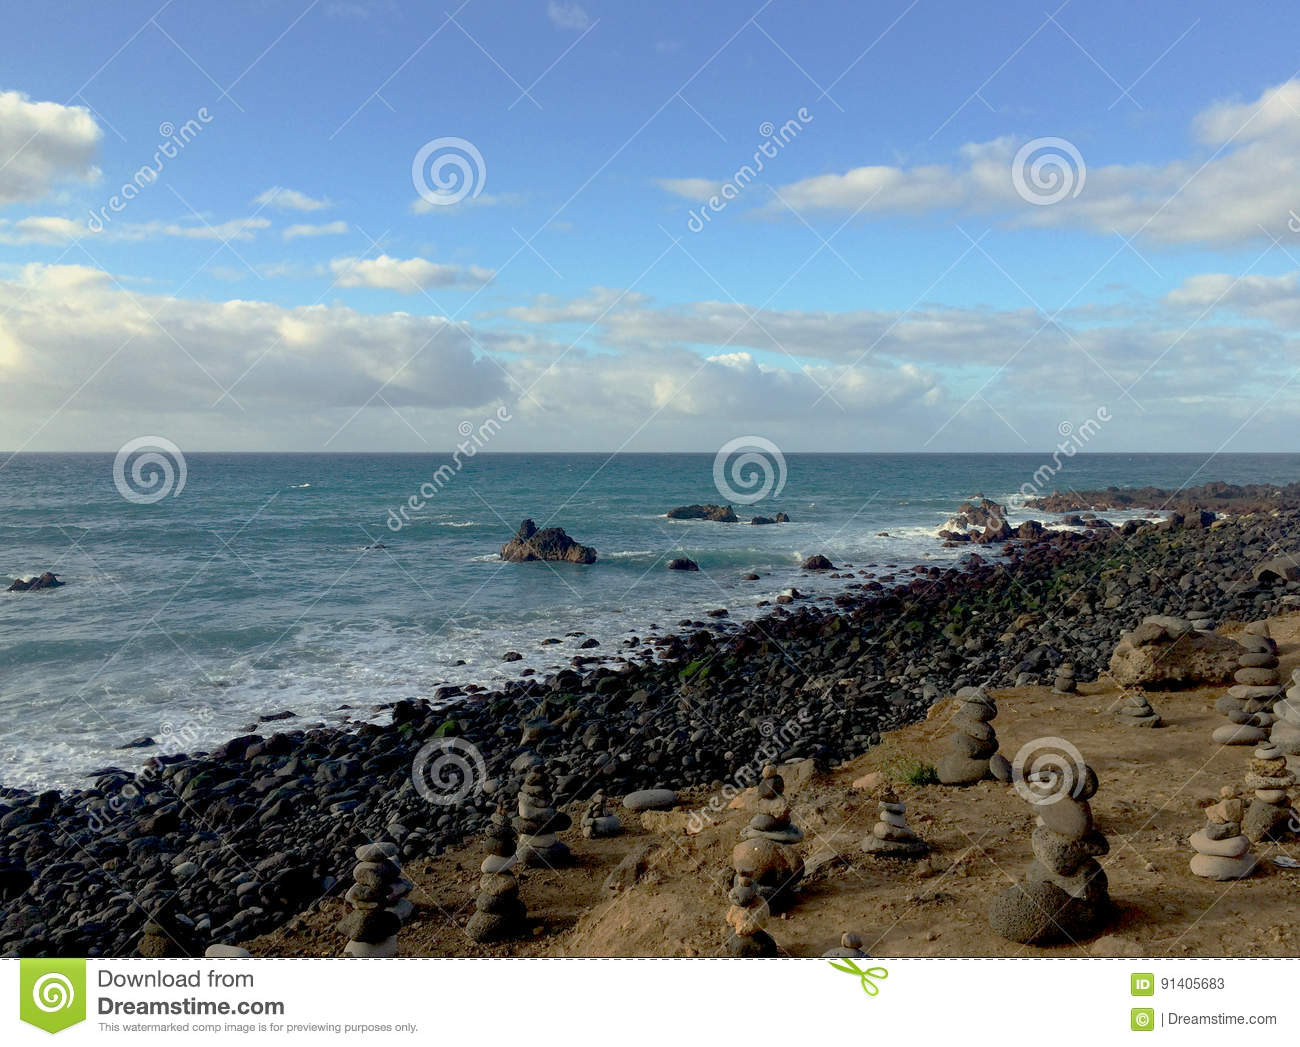 Beach shore full of monoliths made with flat stones with sea background